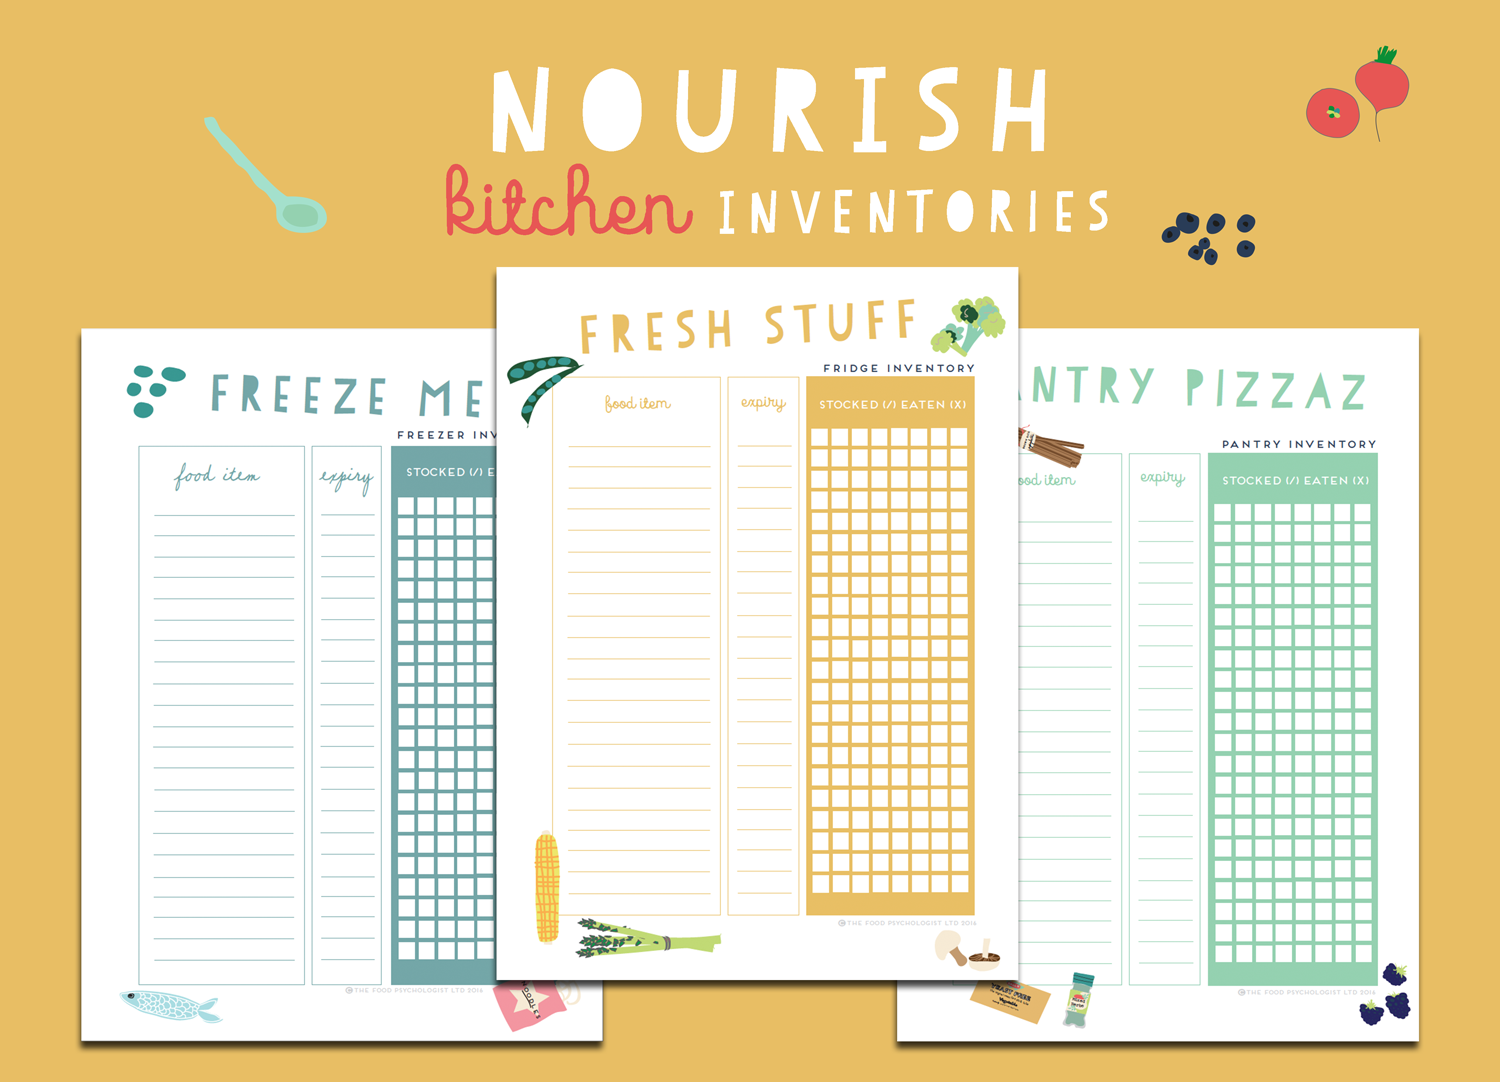 Nourish Kitchen Inventories